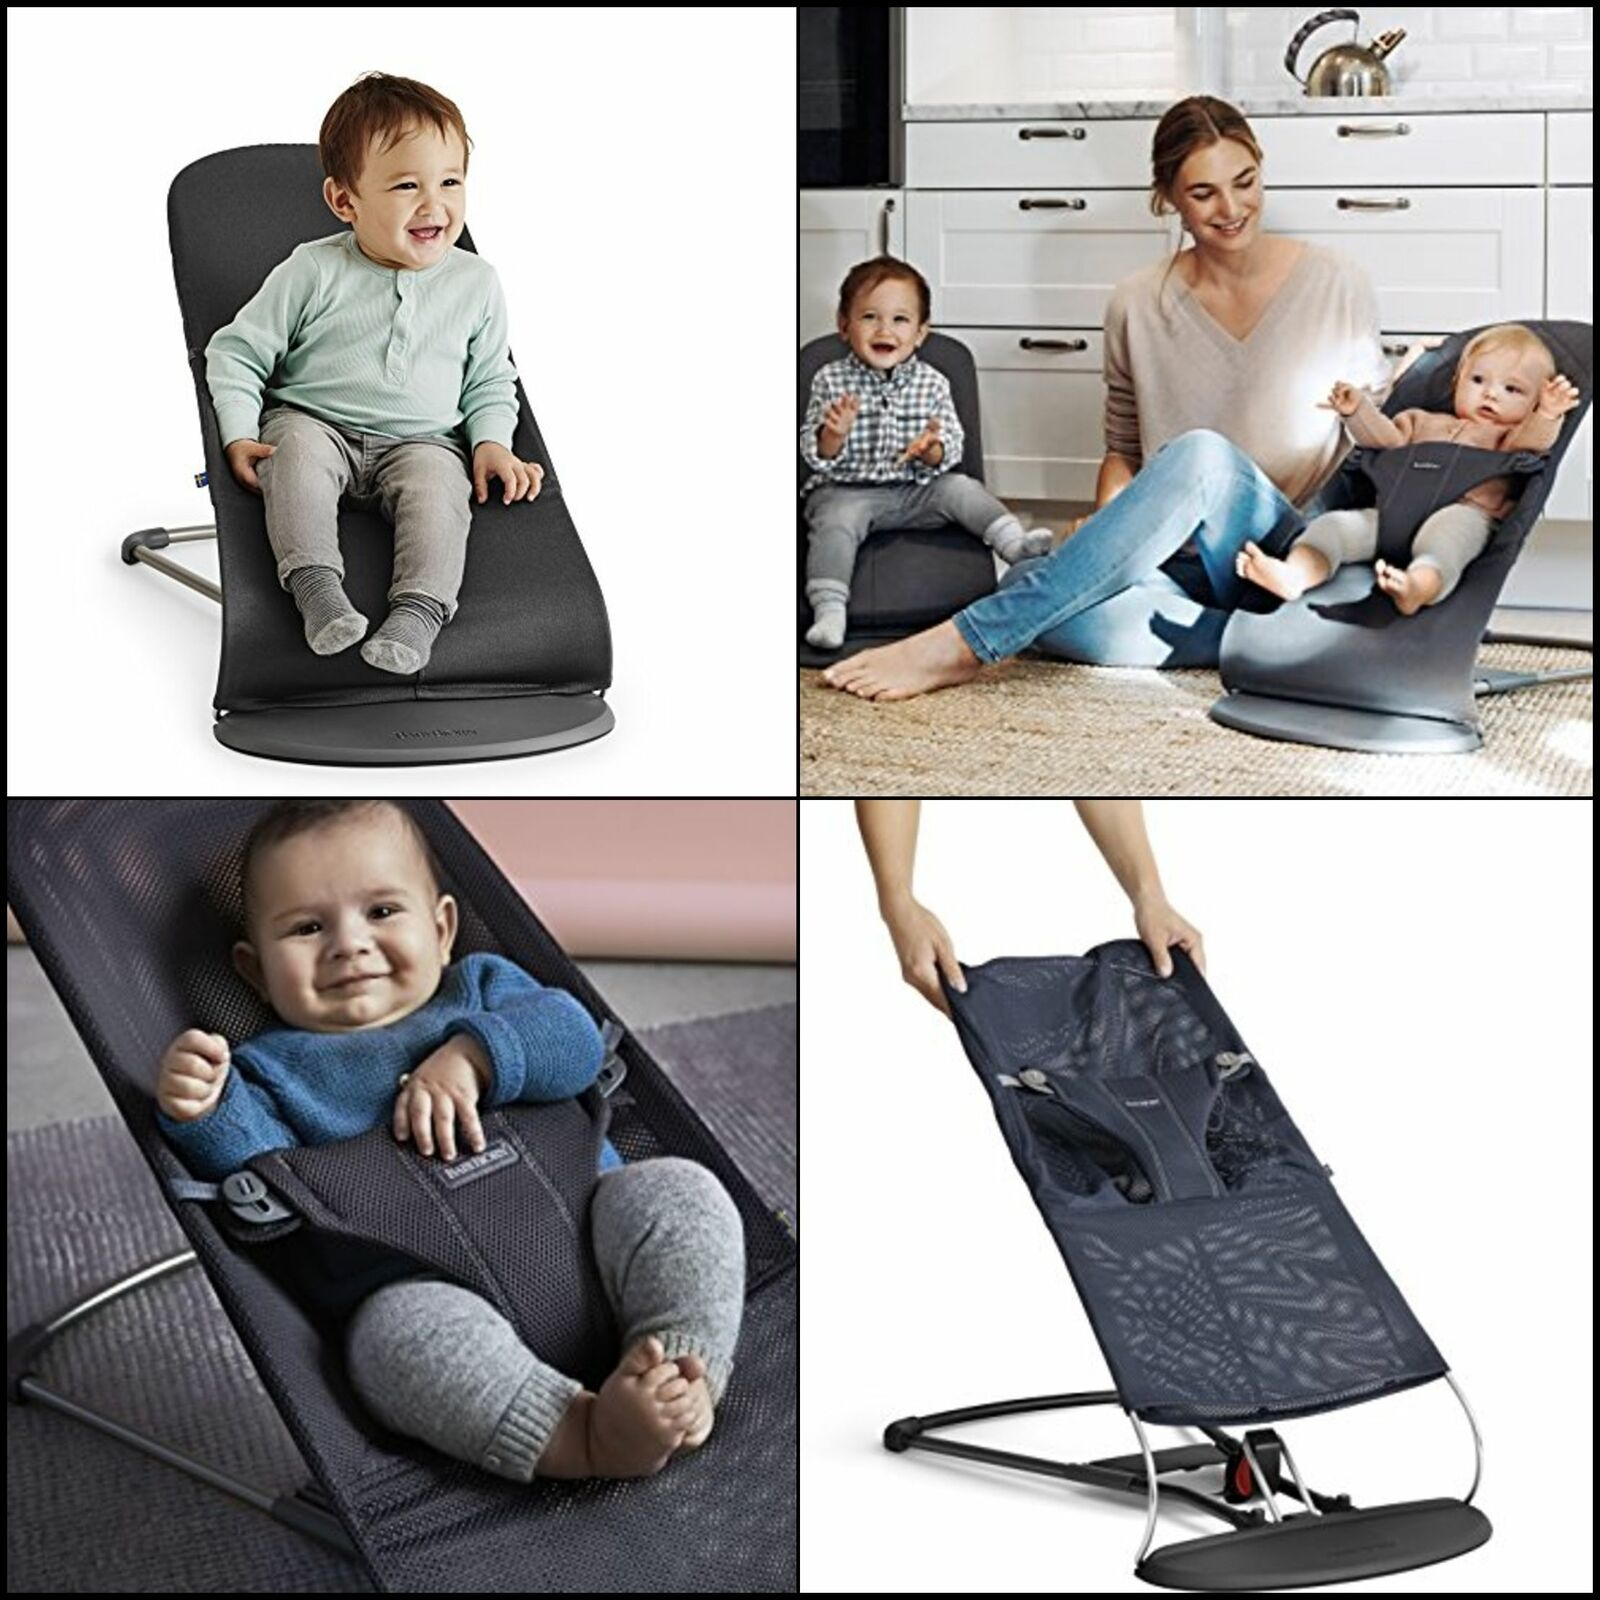 BABYBJORN BabyBjorn Fabric Seat for Bouncer - Anthracite, Me